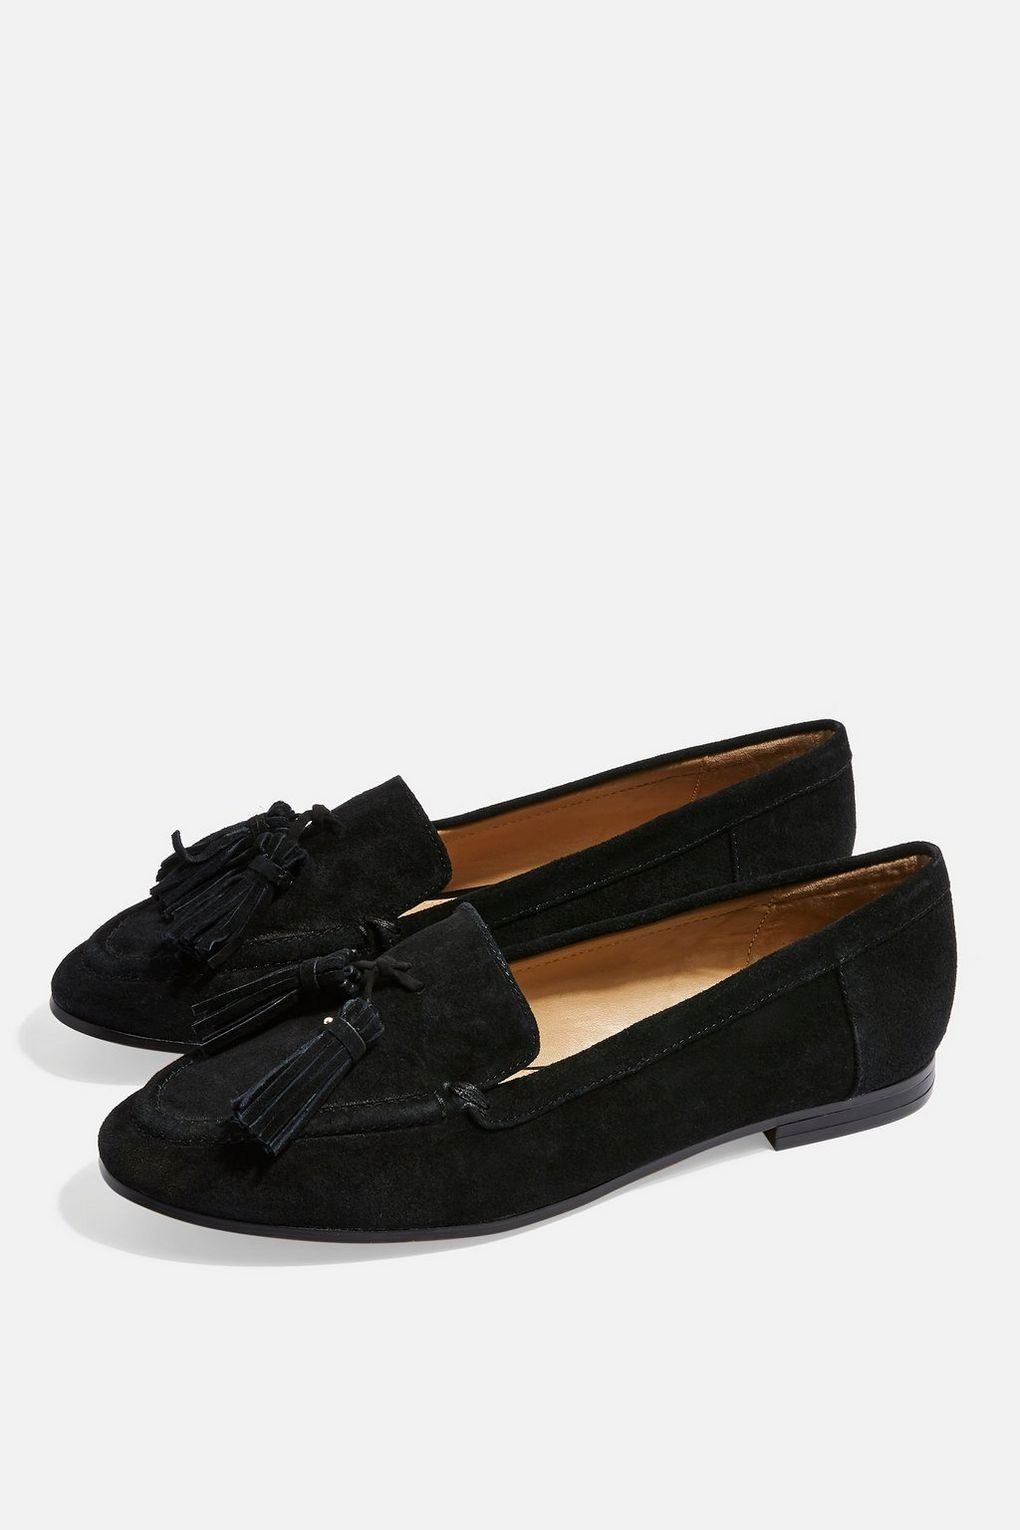 b0109cb44b2a LEXI Suede Loafers - New Semester Essentials - Clothing